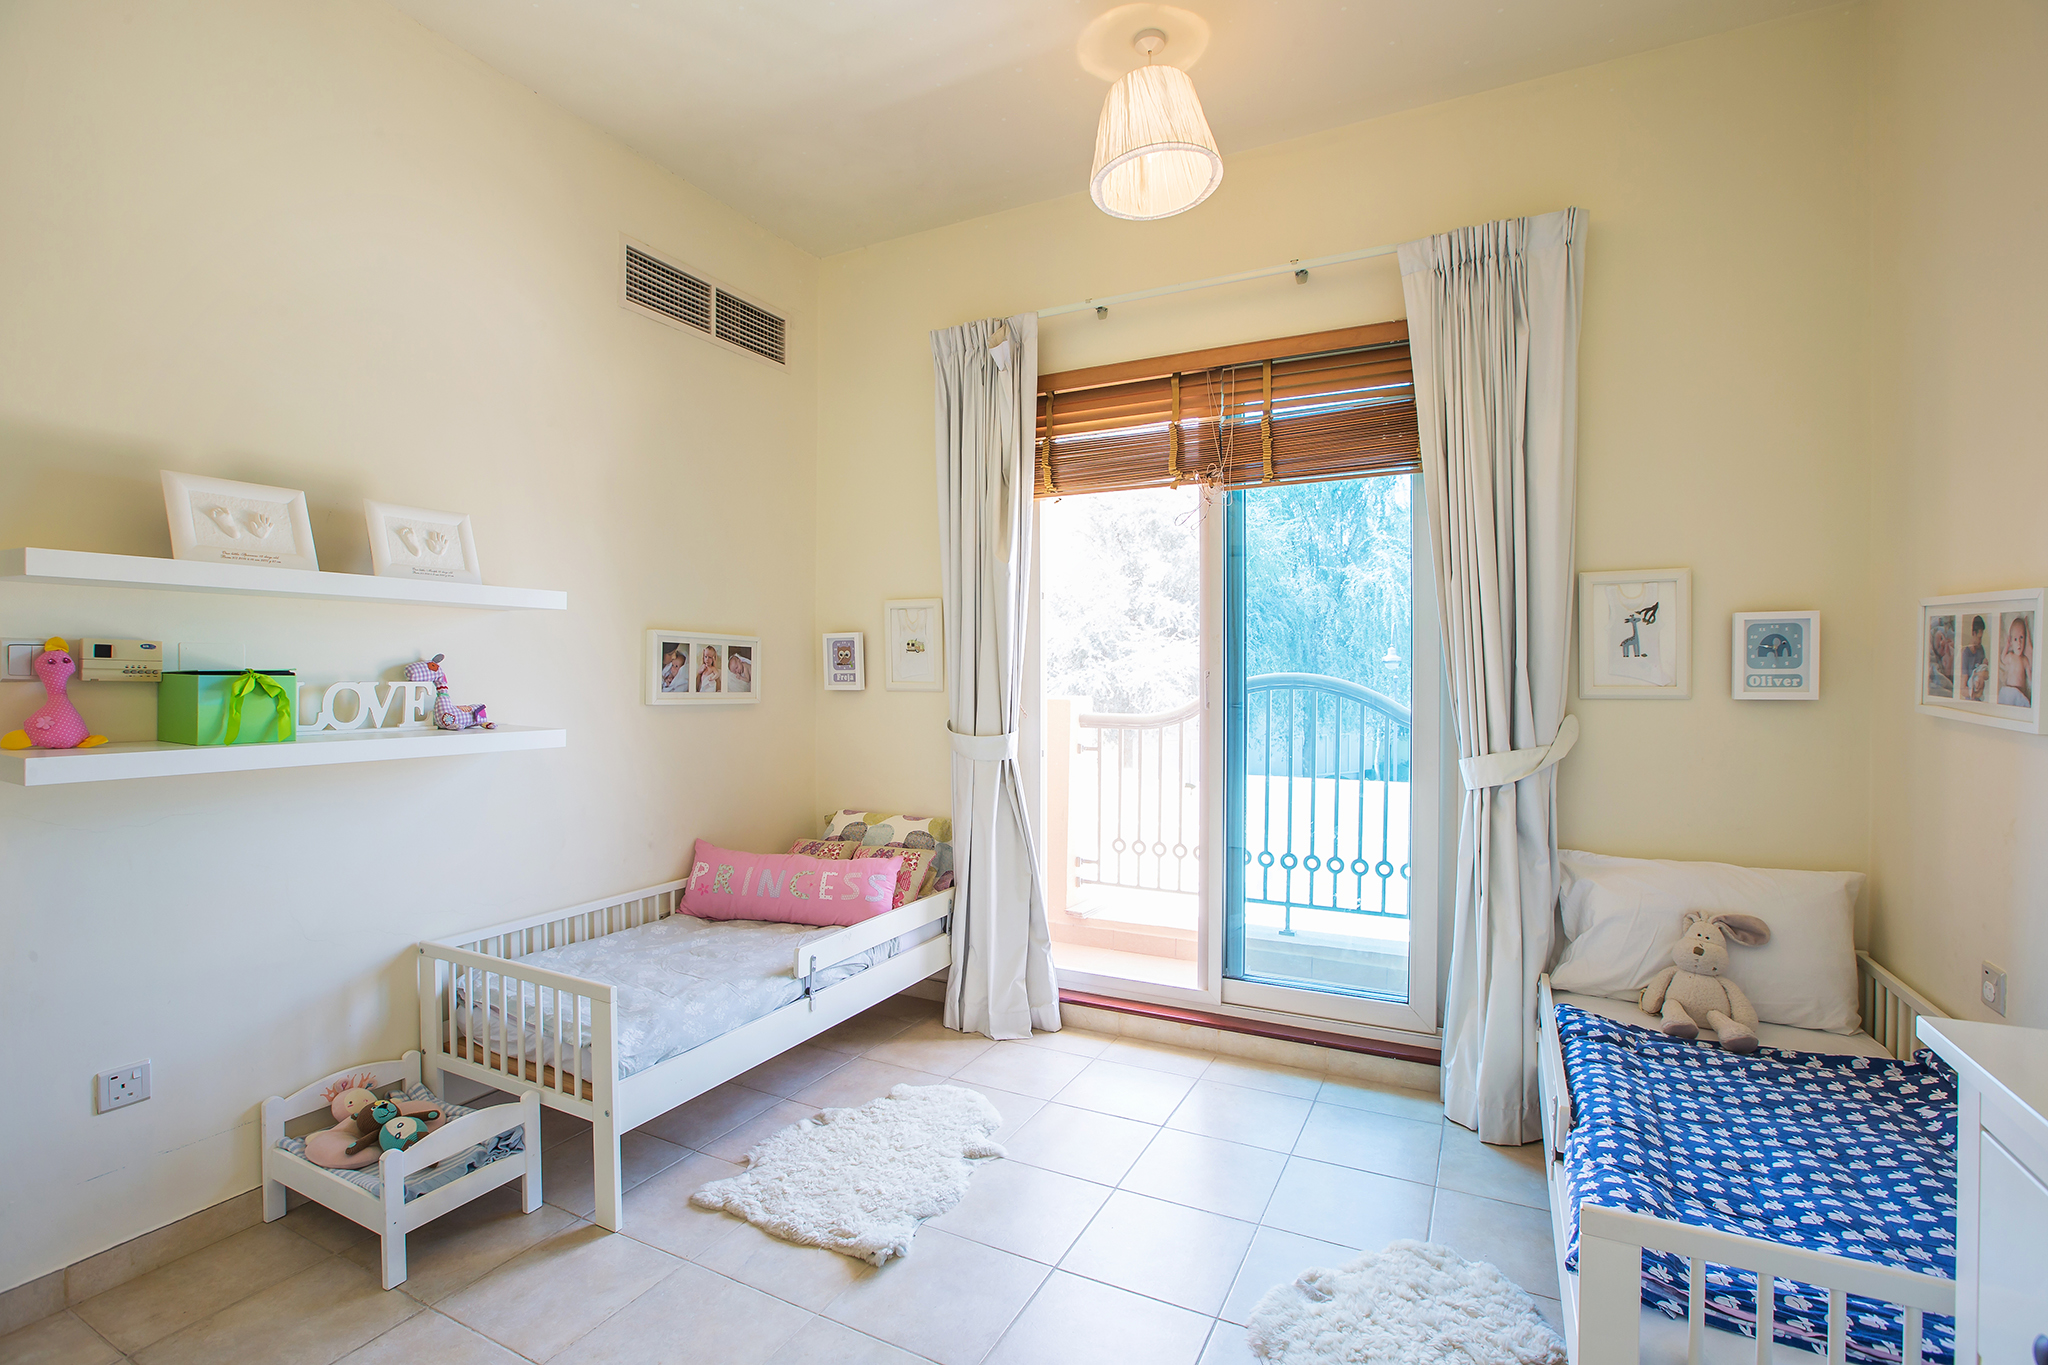 Cute and charming kid's bedroom